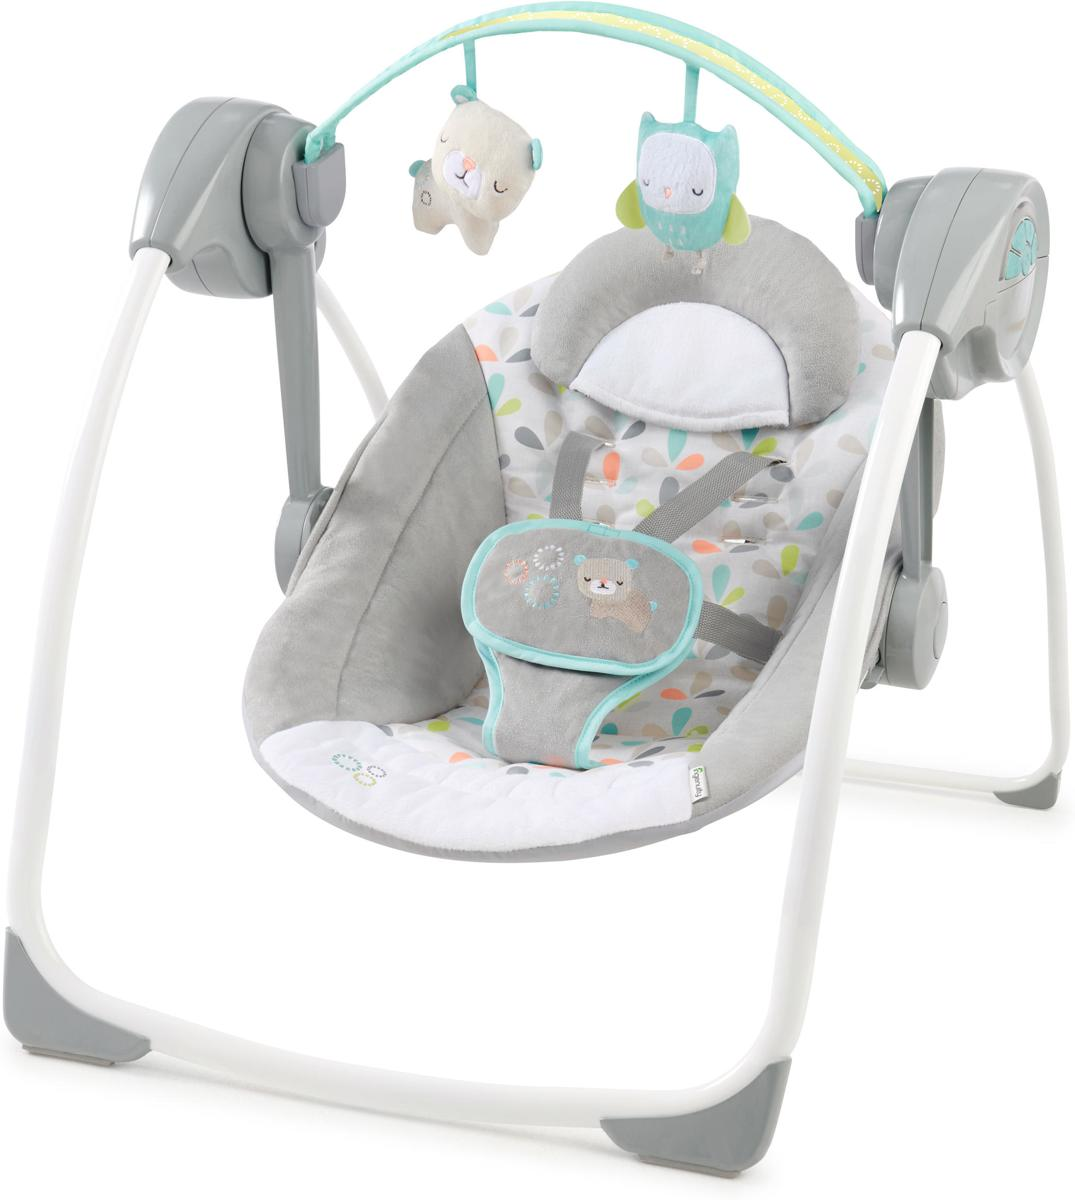 Comfort 2 Go Portable Swing Fanciful Forest